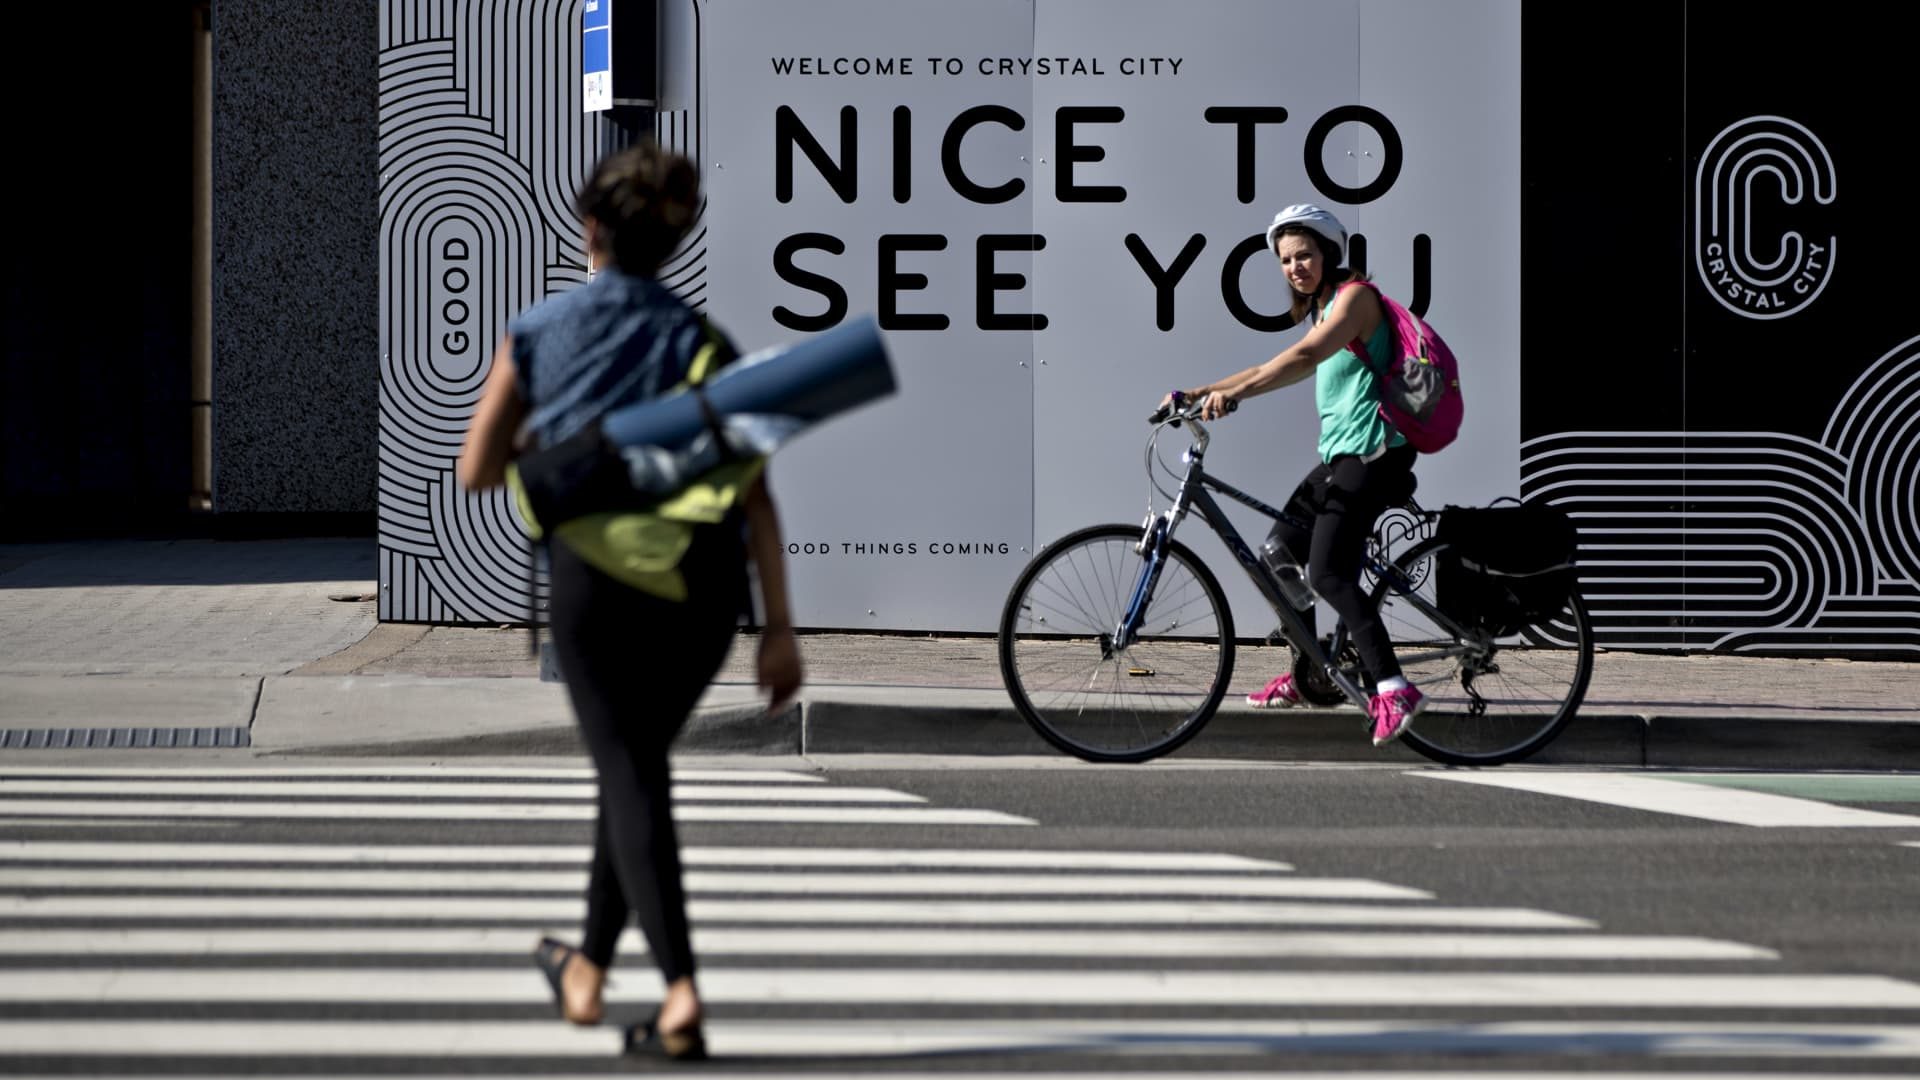 A bicyclist stops in front of signage in the Crystal City neighborhood of Arlington, Virginia, on June 28, 2019, the site of Amazon's HQ2.